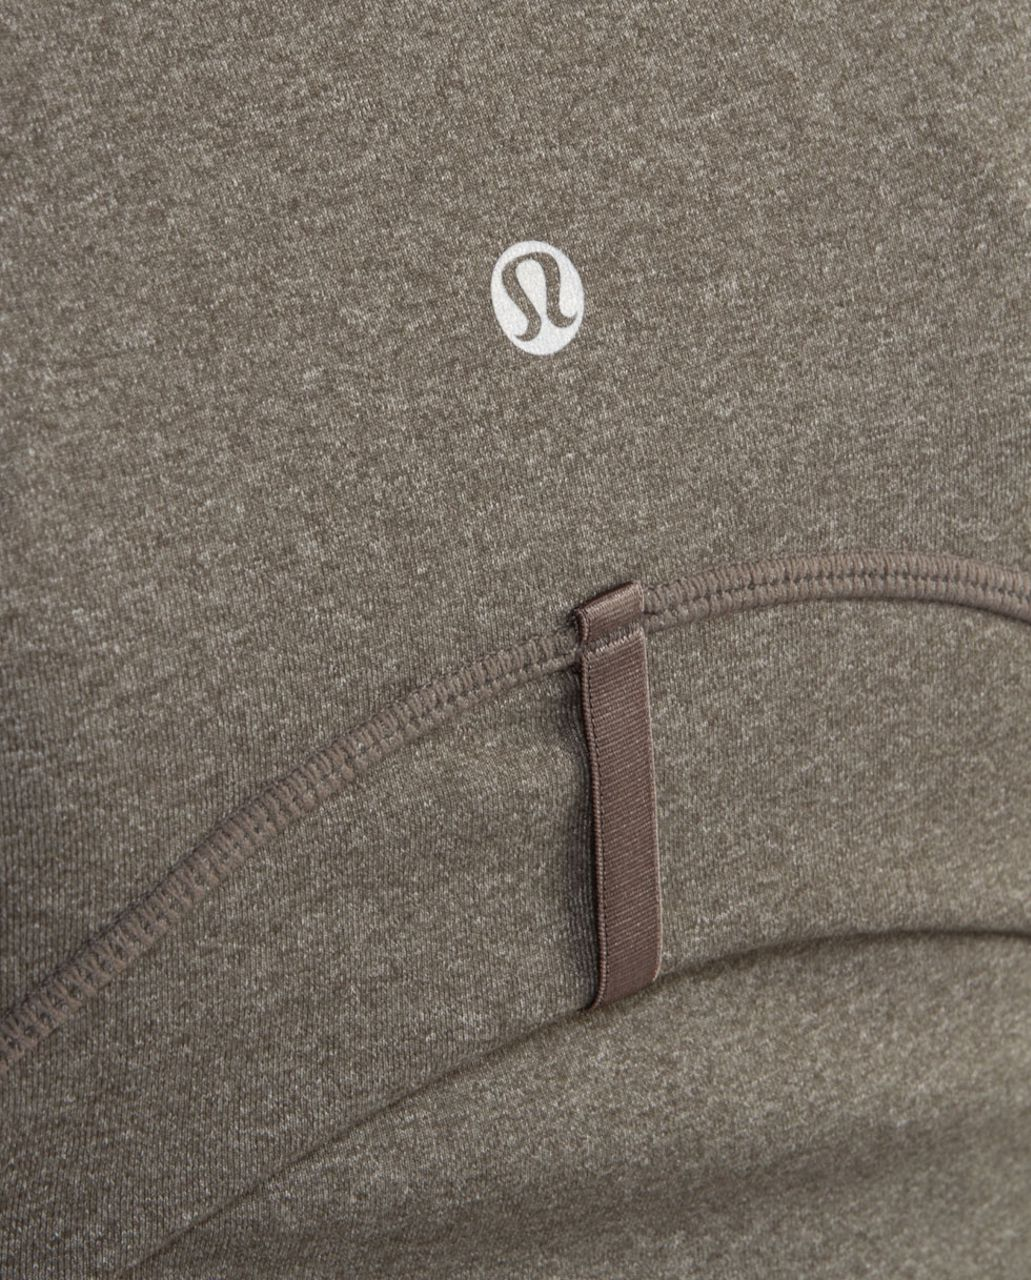 Lululemon Define Jacket - Heathered Wren /  Wren